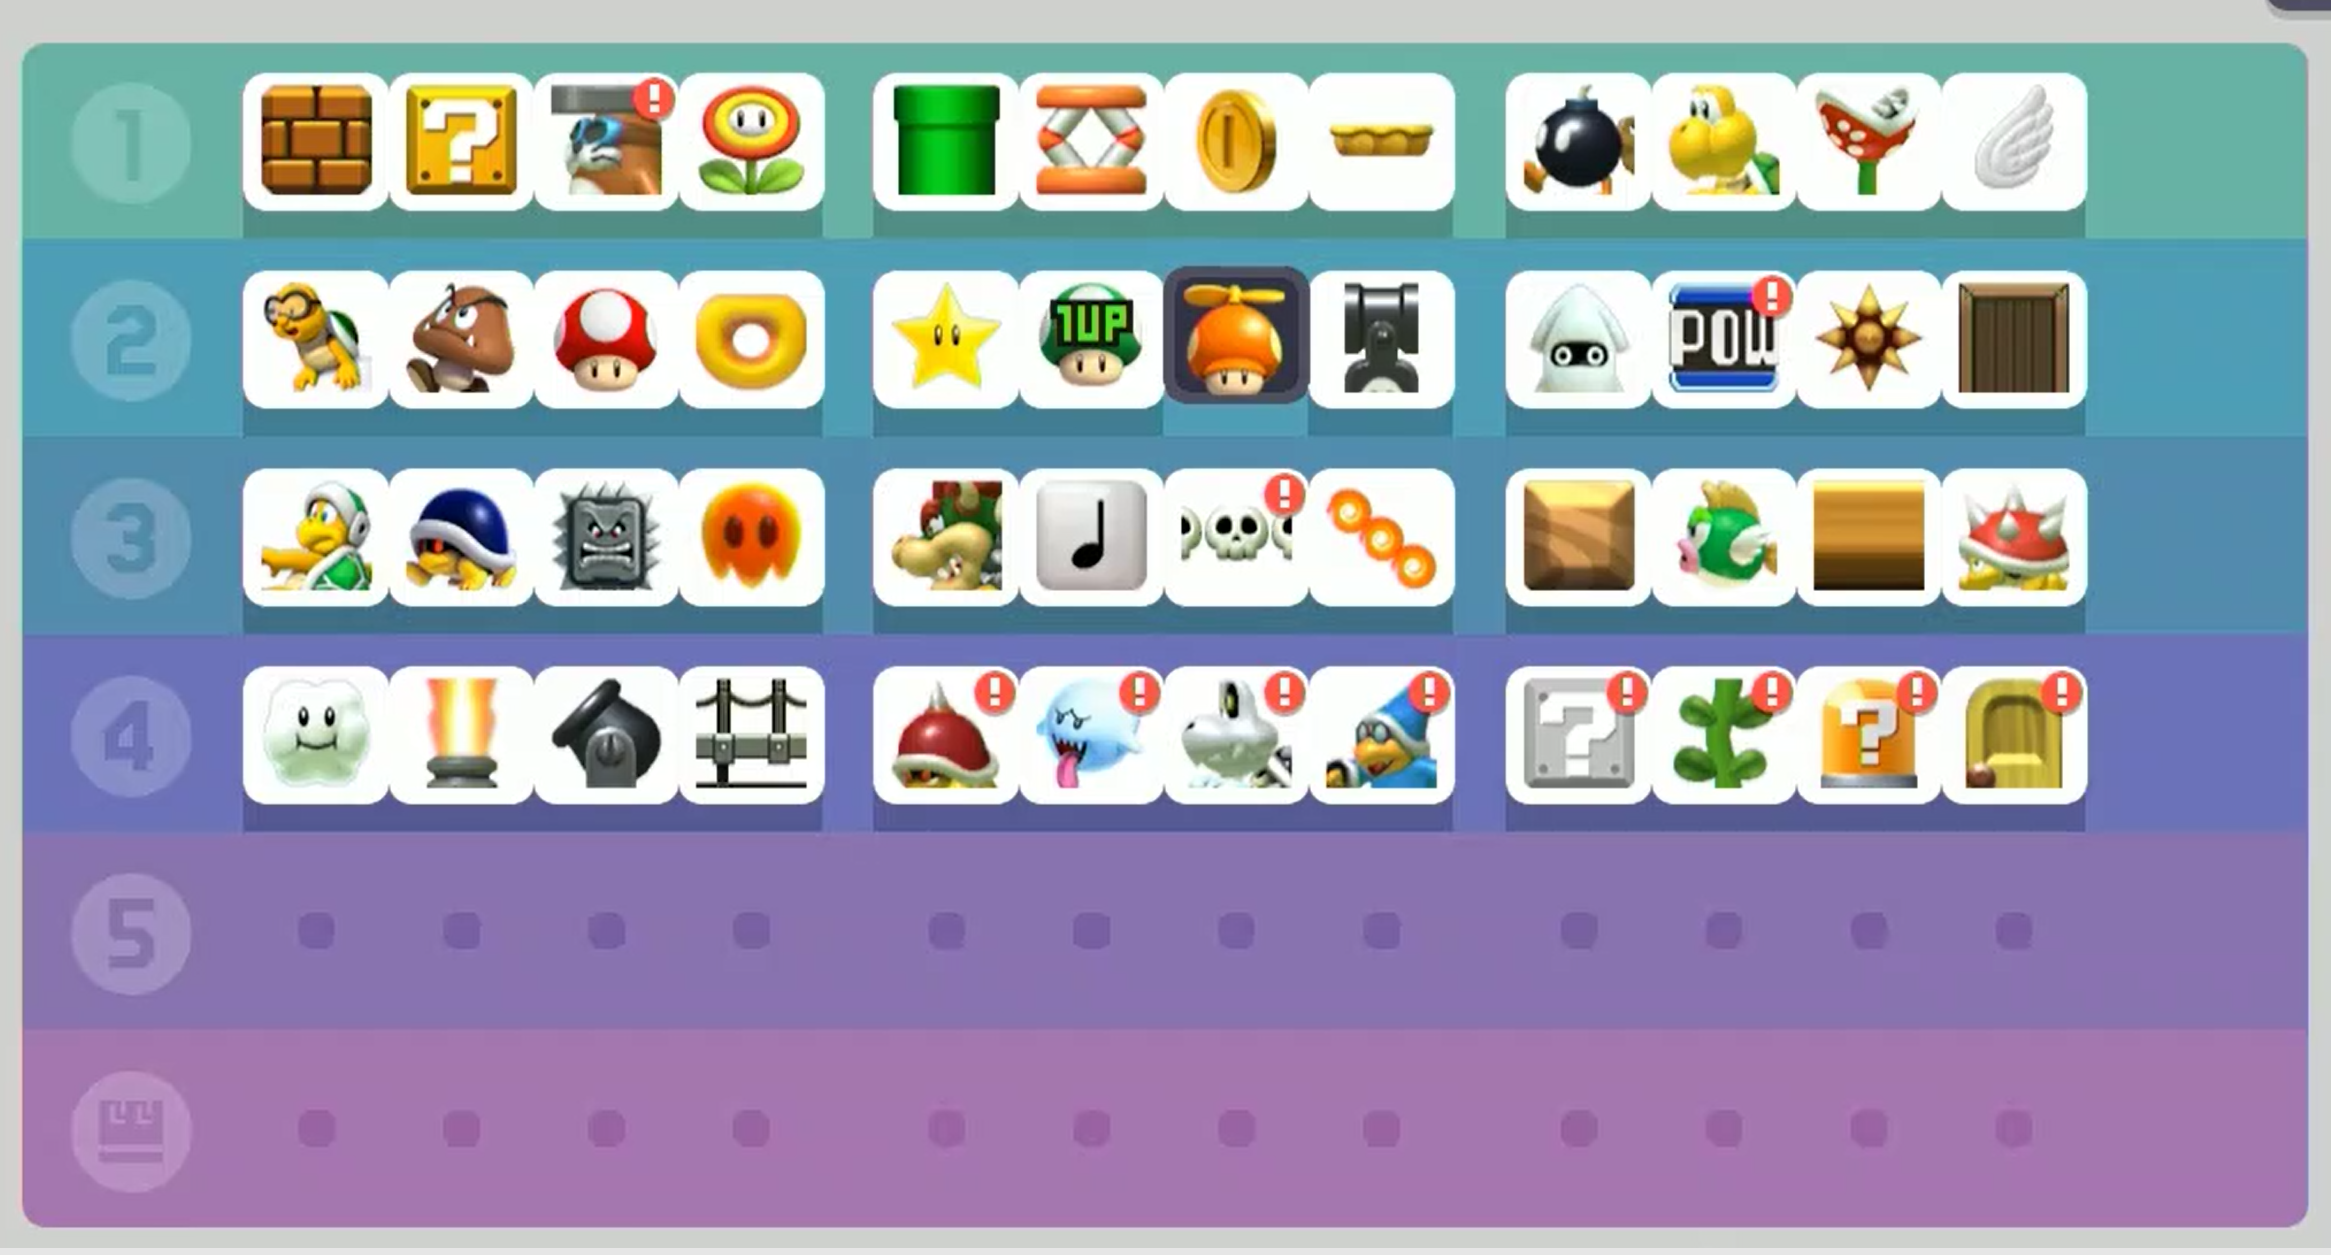 Some of the items in Super Mario Maker.